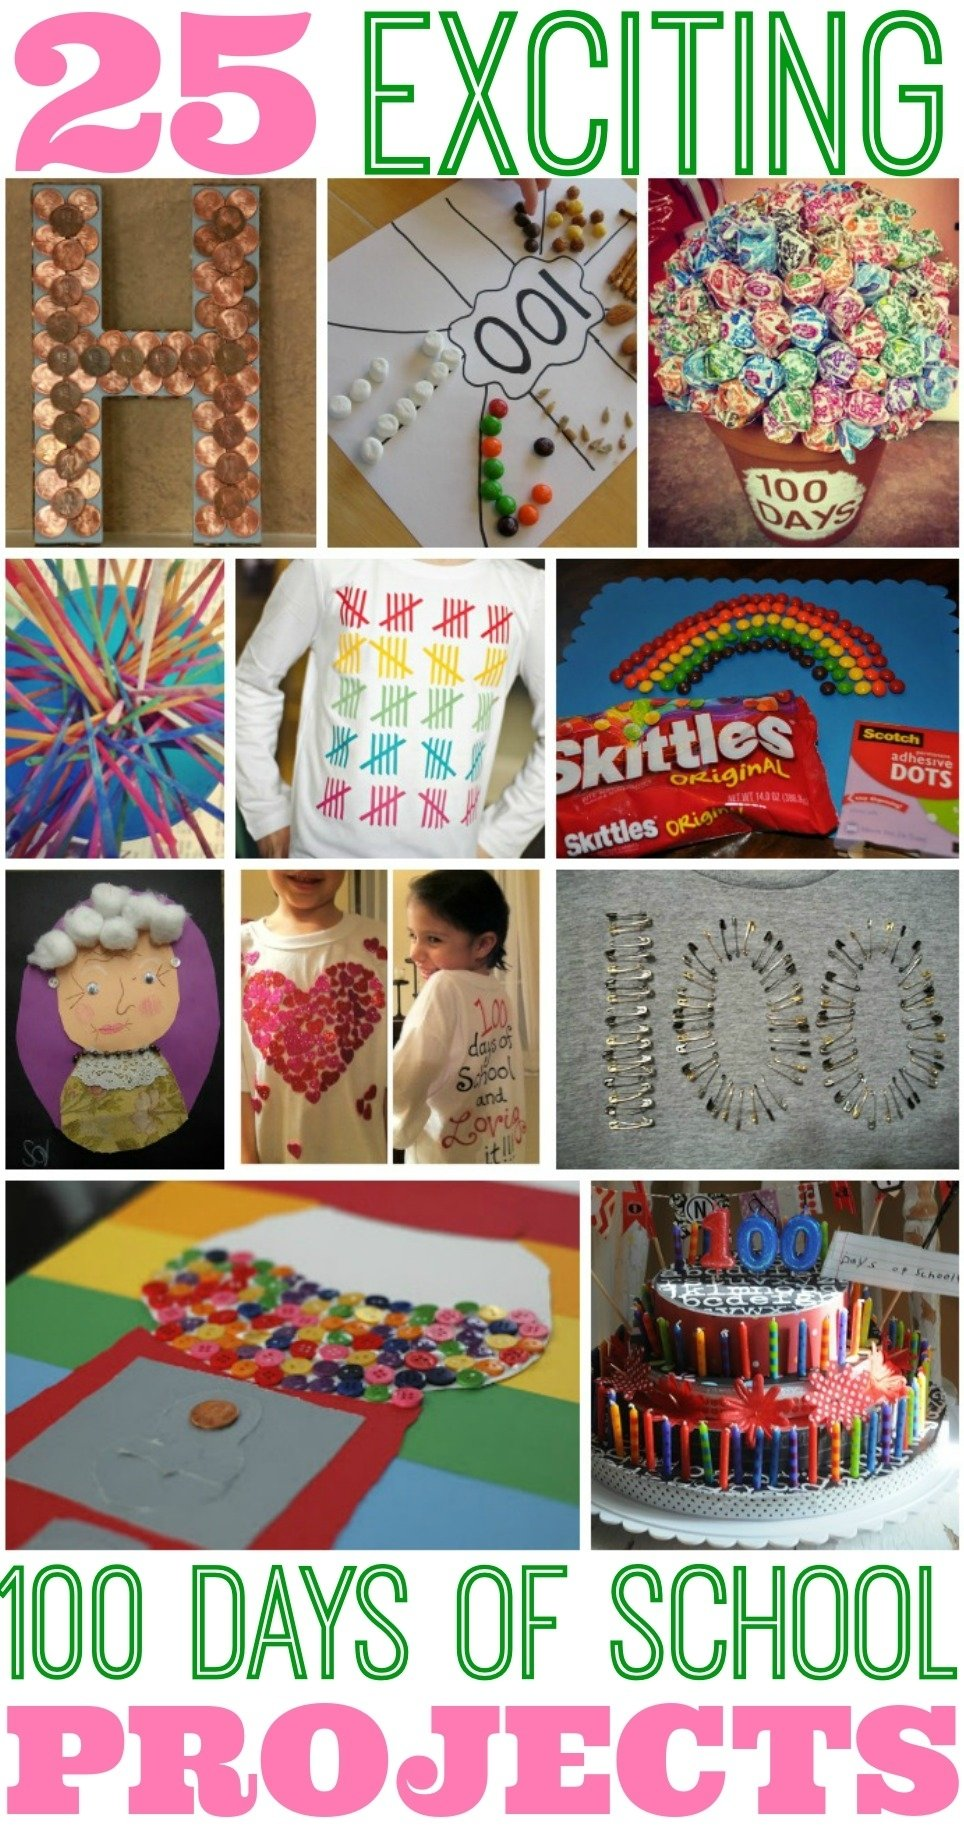 10 Perfect Ideas For 100 Days Of School Project best 100 days of school project ideas 2021